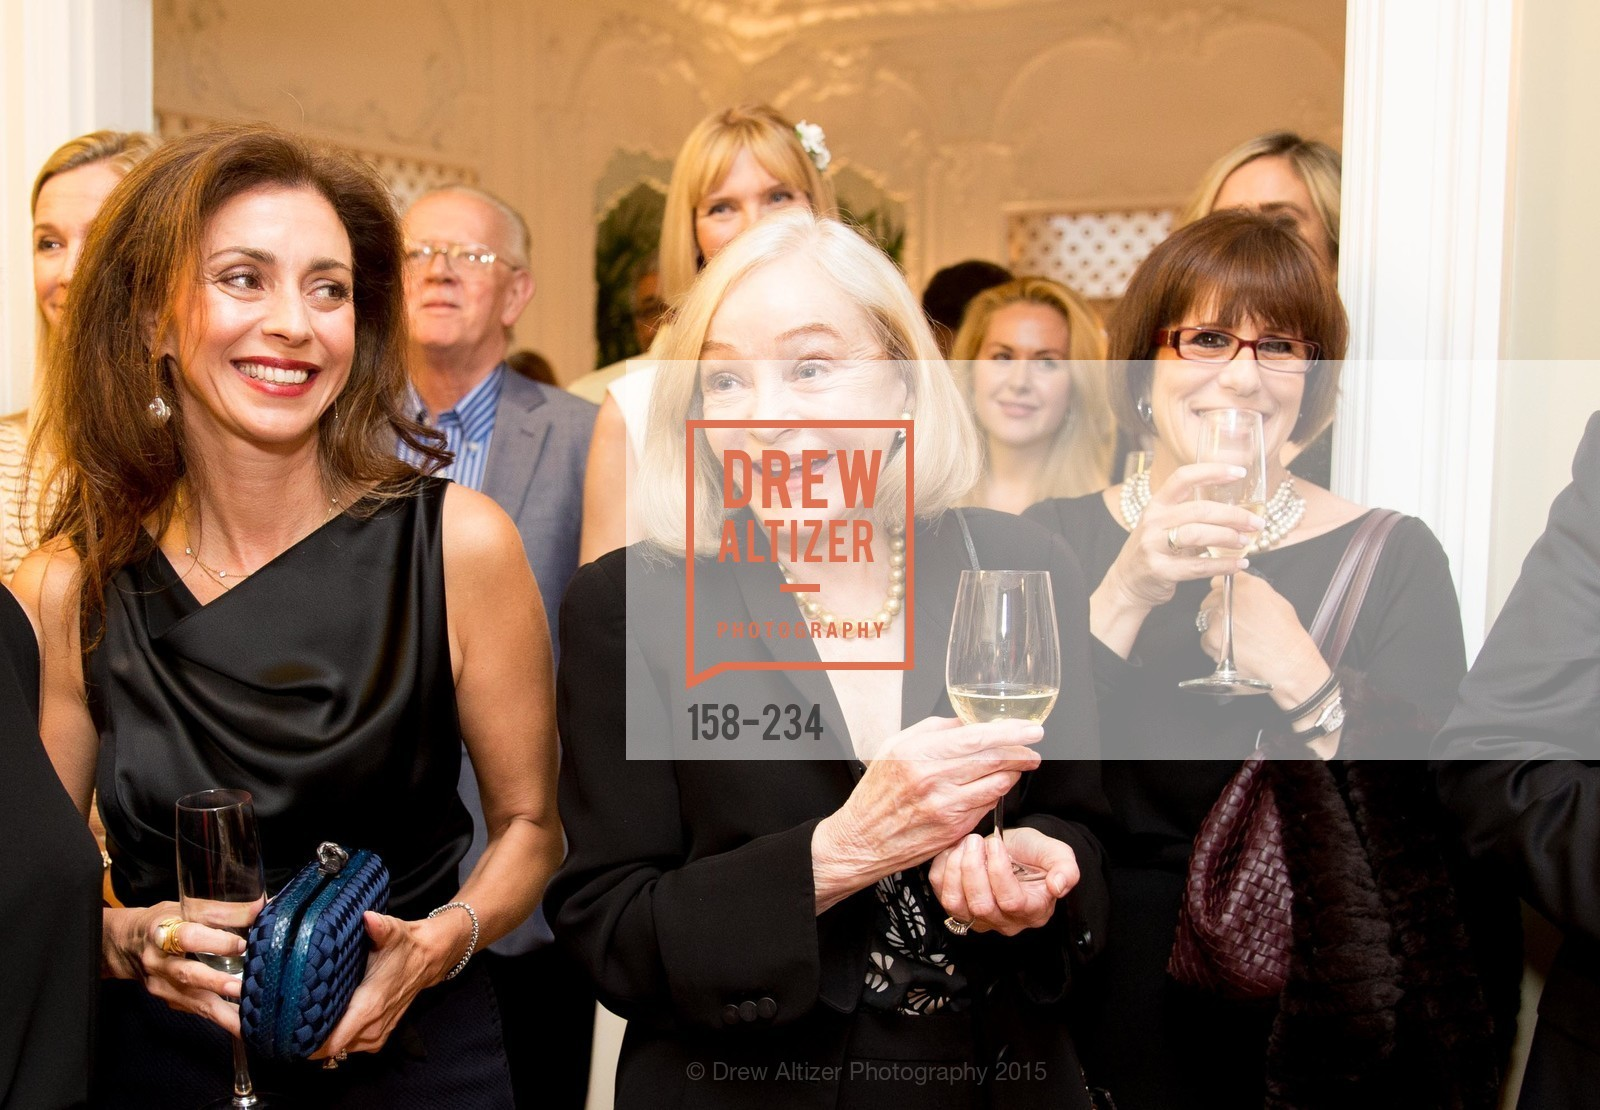 Maryam Muduroglu, Gretchen Kimball, Terri Mino, San Francisco Opera Ball 2015 Patron Party, Private Residence, August 19th, 2015,Drew Altizer, Drew Altizer Photography, full-service agency, private events, San Francisco photographer, photographer california